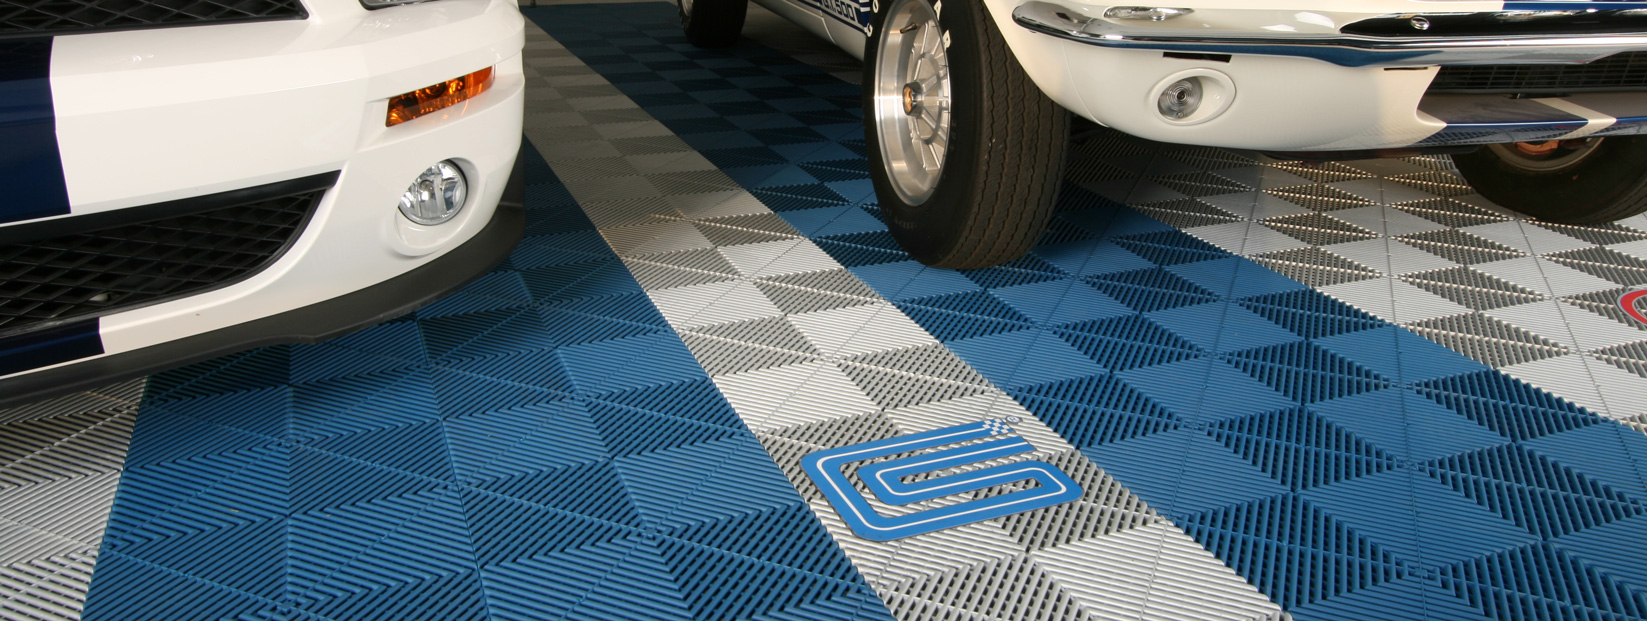 St. Louis Garage Flooring